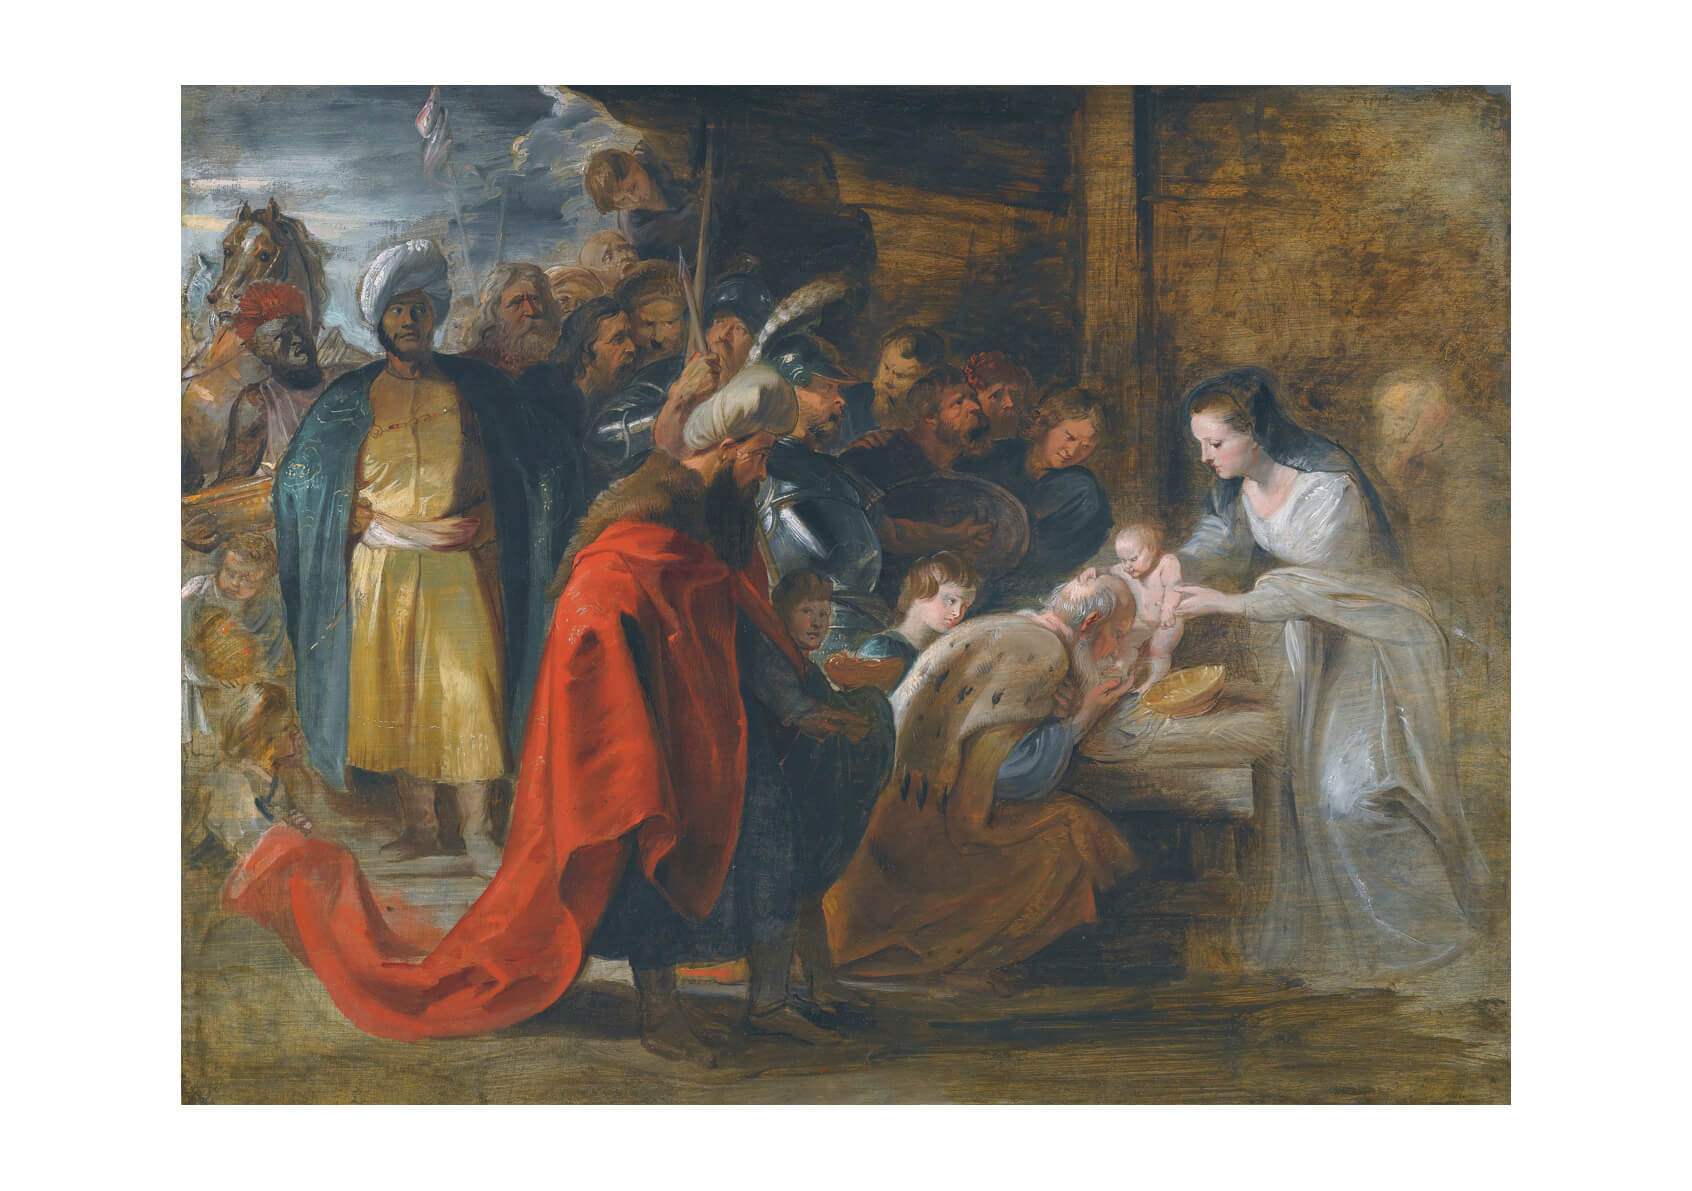 Peter Paul Rubens - Study for the Adoration of the Magi